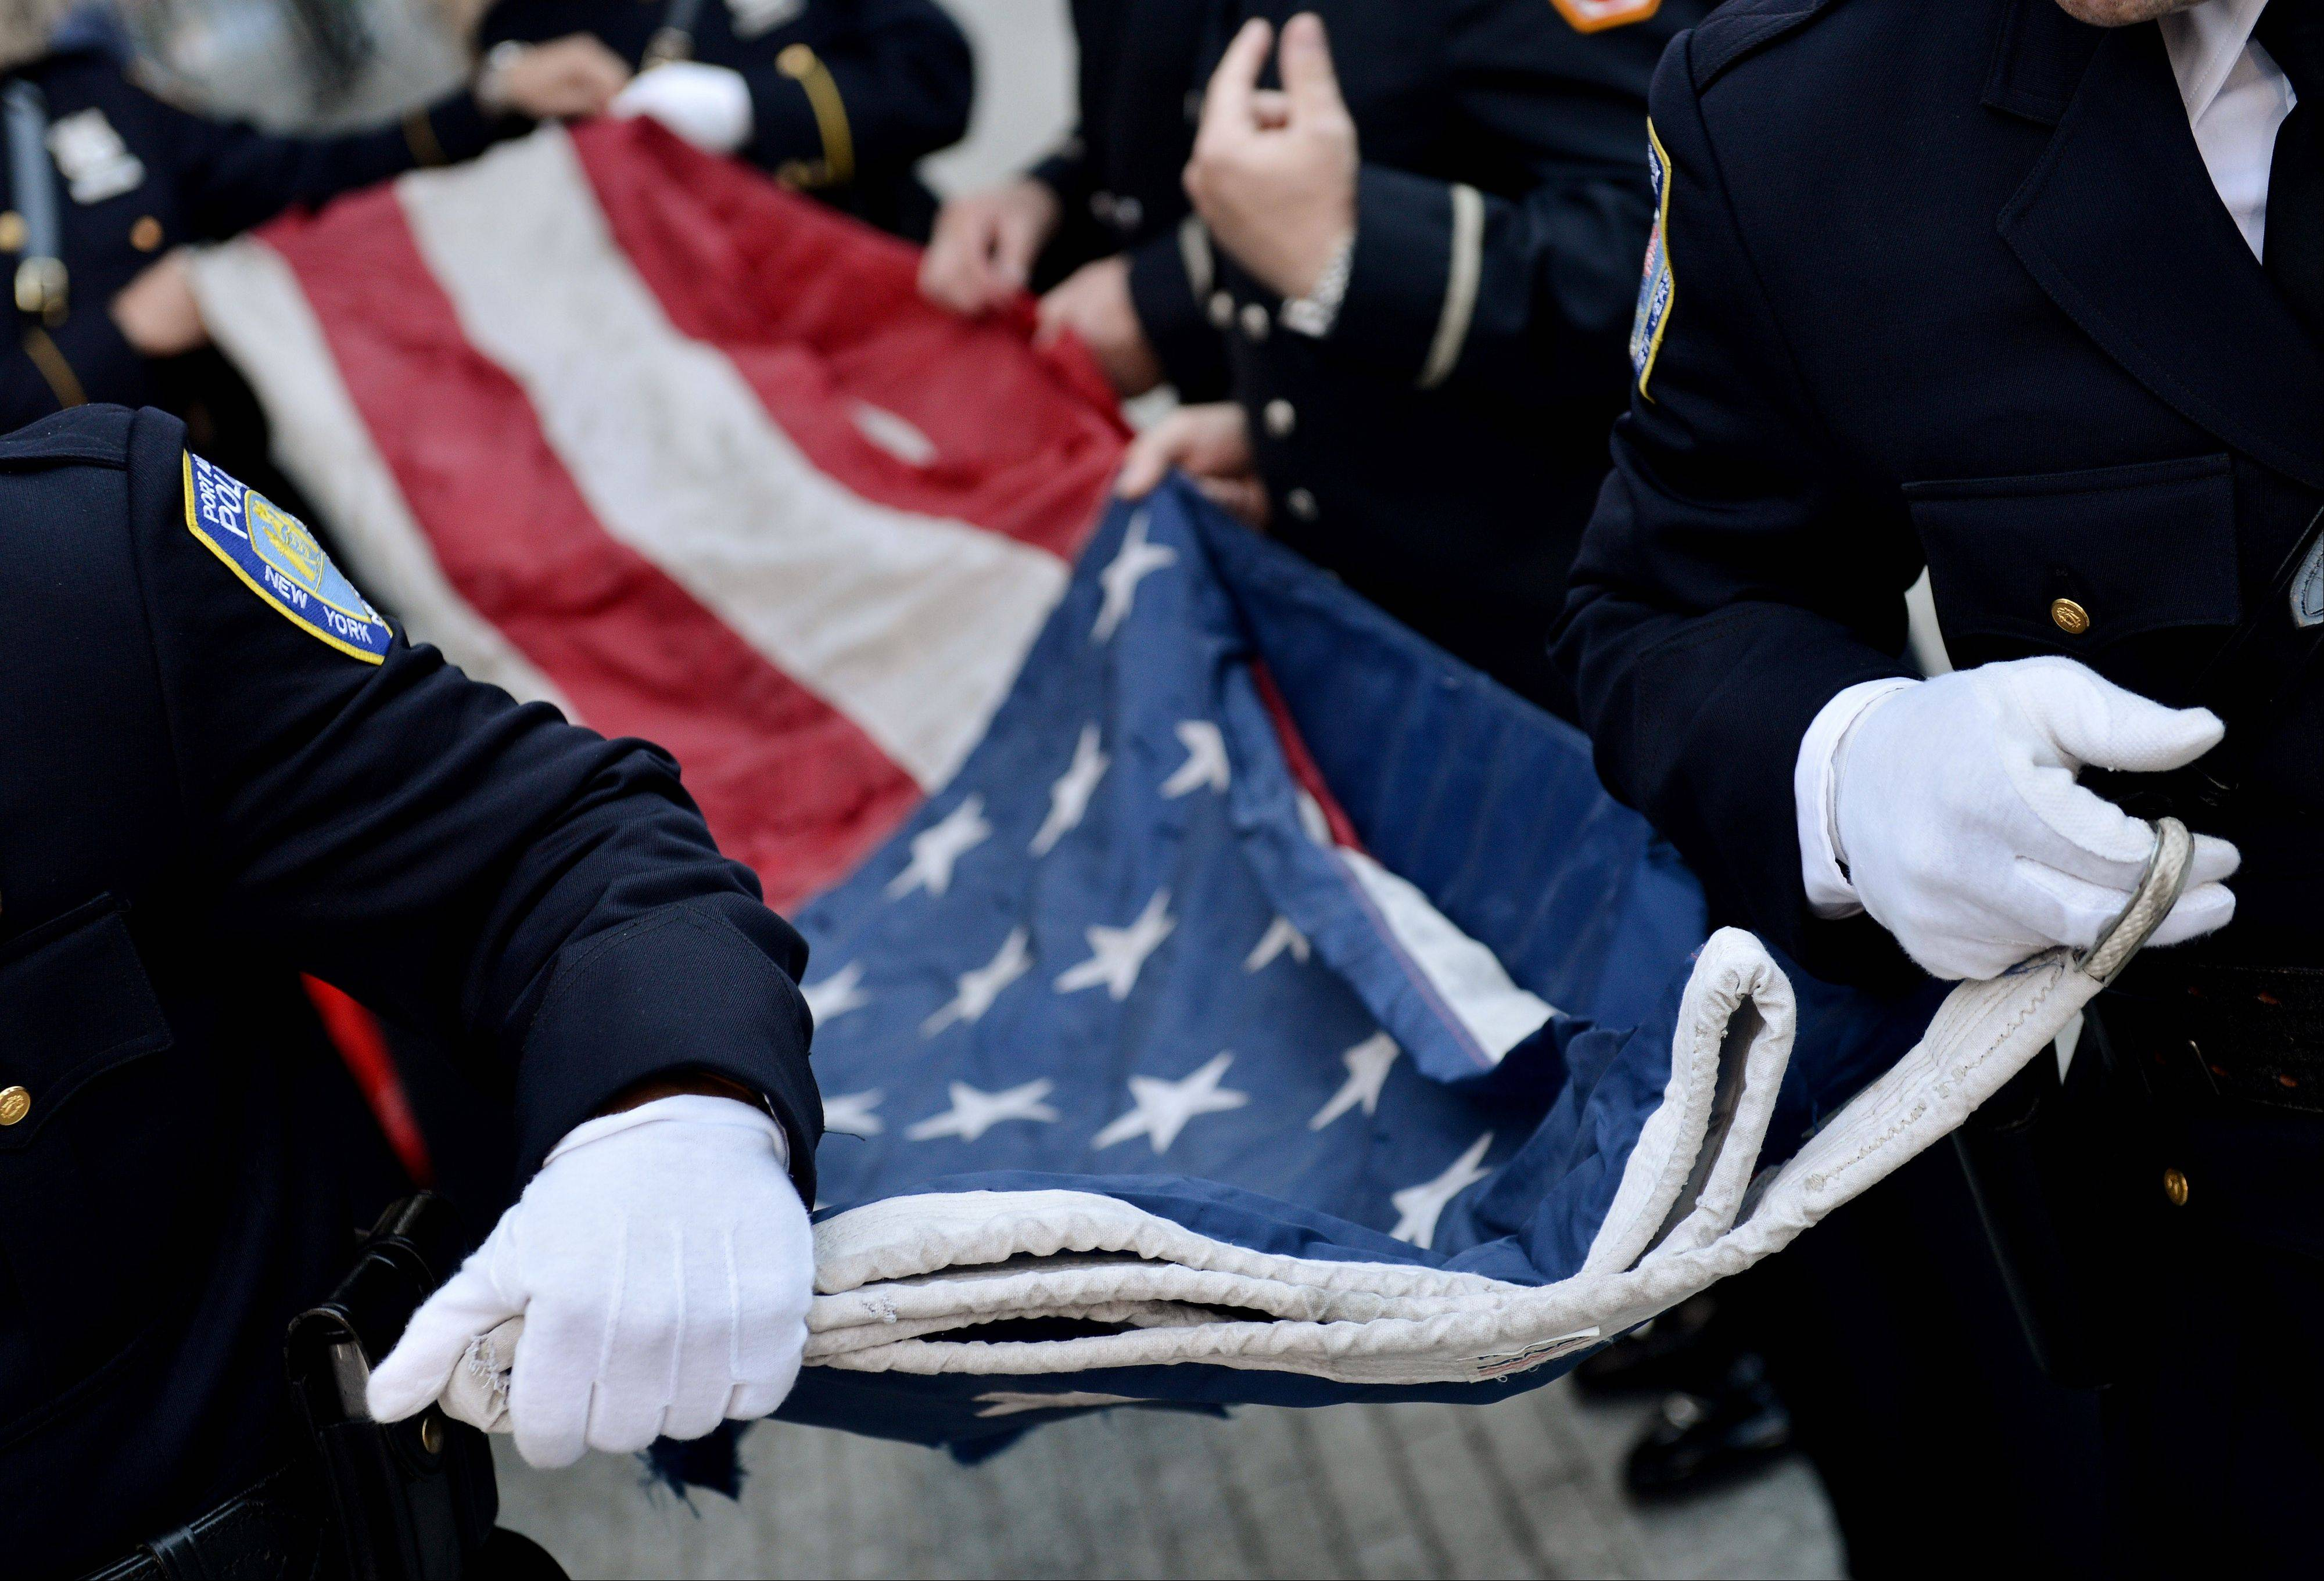 Police Officers of the Port Authority of New York and New Jersey carry an American flag that flew over at the World Trade Center towers during a ceremony marking the 11th anniversary of the attacks on the World Trade Center in New York, Tuesday, Sept. 11, 2012.